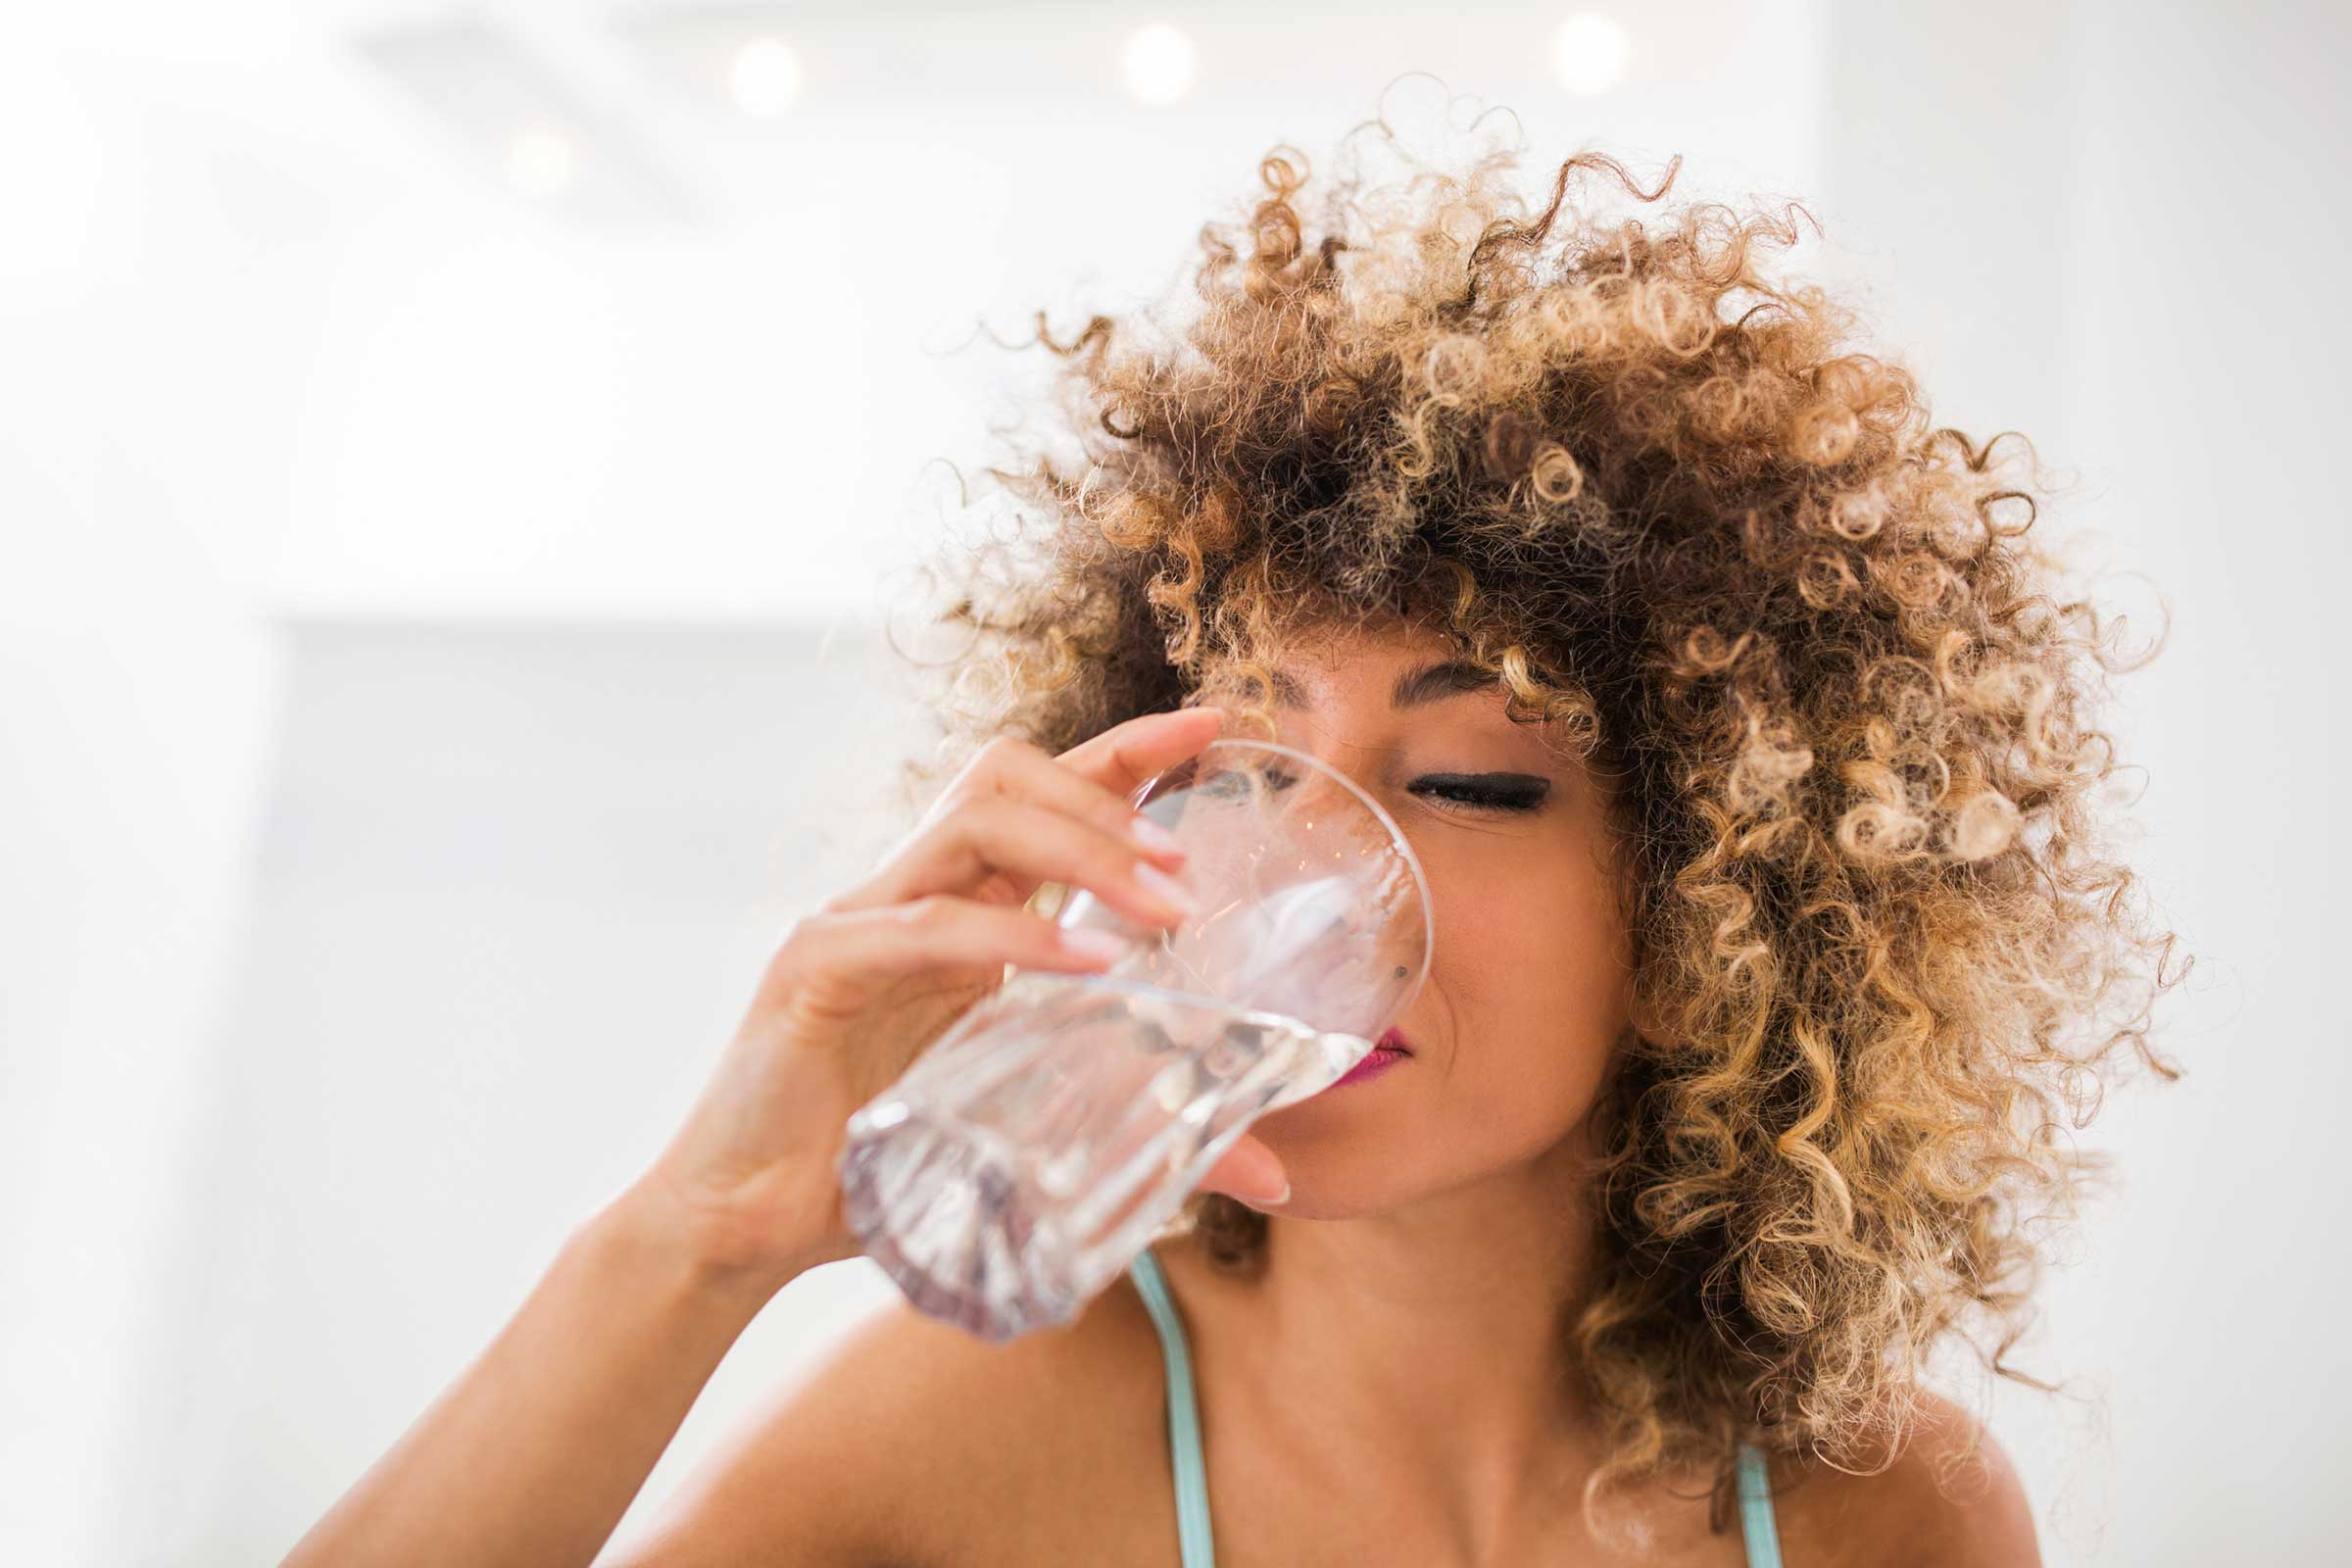 Bottoms Up: Tips How to Drink 1 Gallon of Water PER DAY